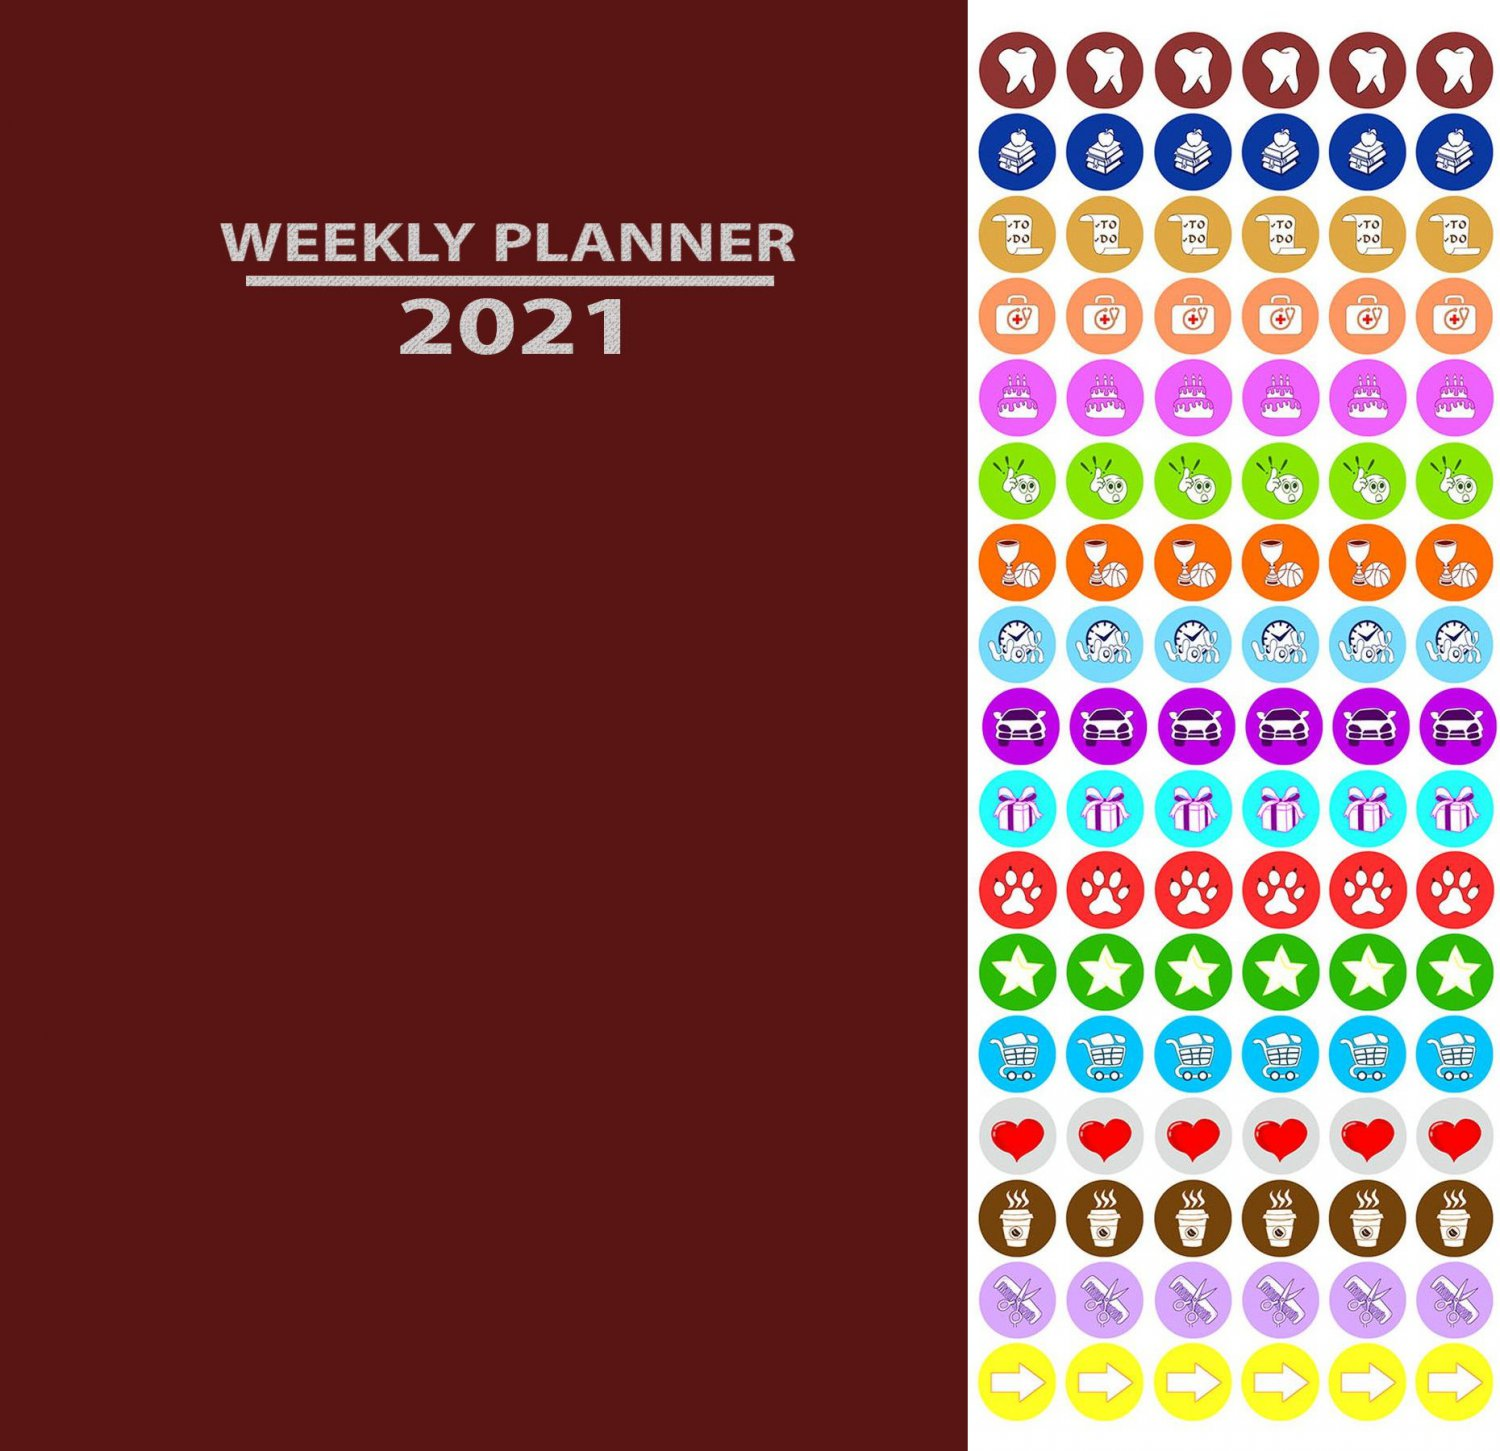 2021 Weekly Appointment Planner/Calendar/Organizer - Color Color (Red) - with 100 Stickers